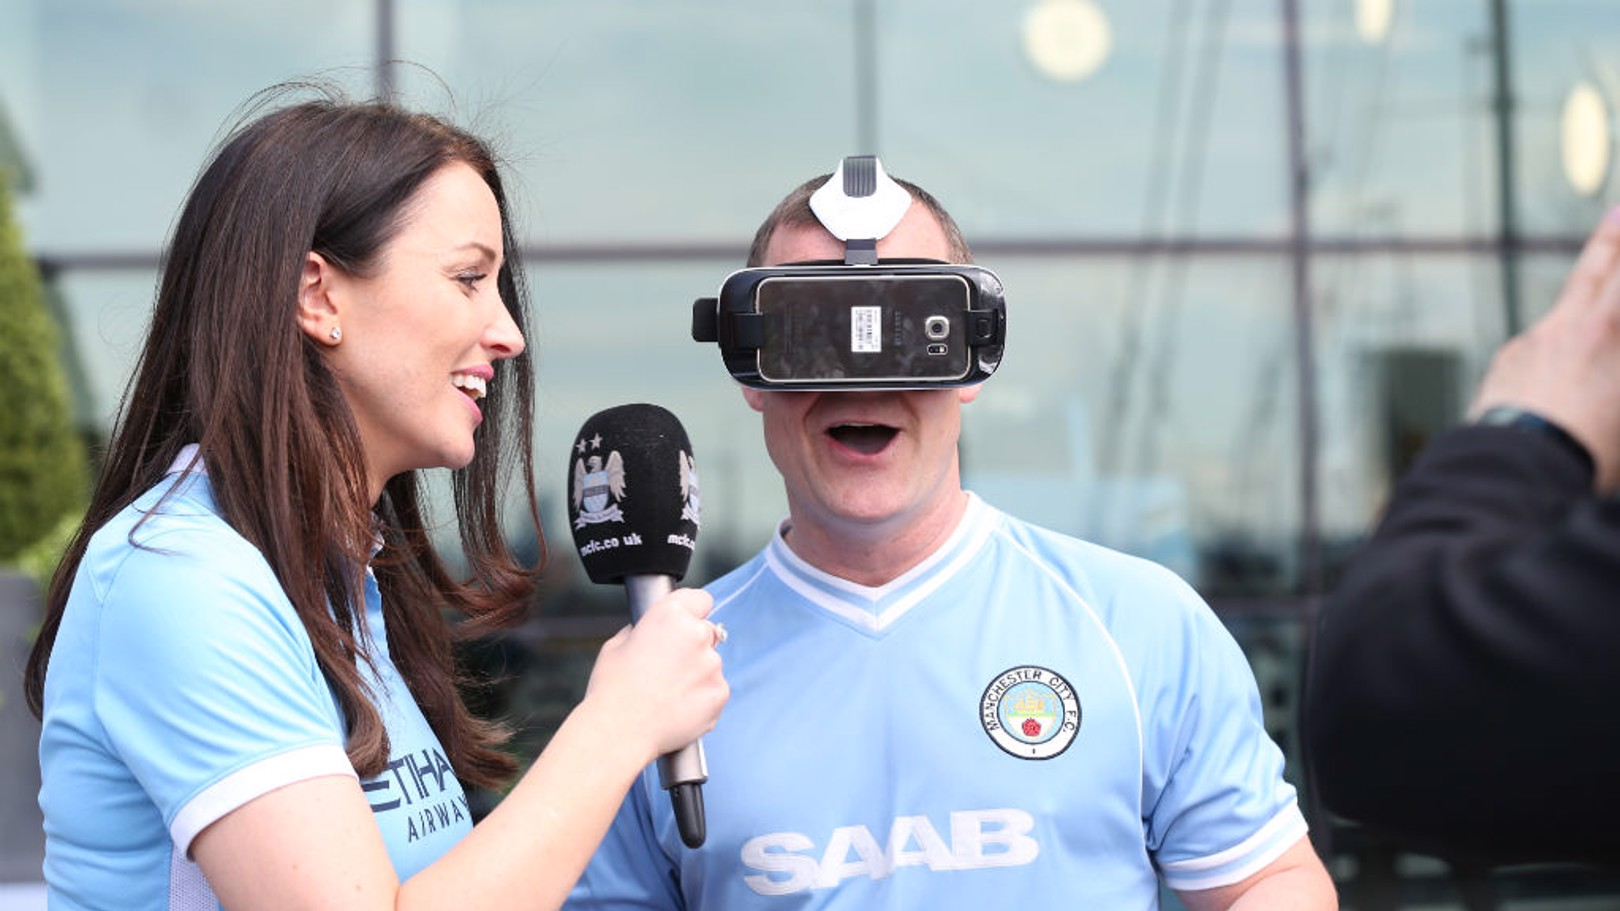 DIFFERENT VIEW: City Square's Danny Jackson experiences the live virtual reality trial in May 2015.